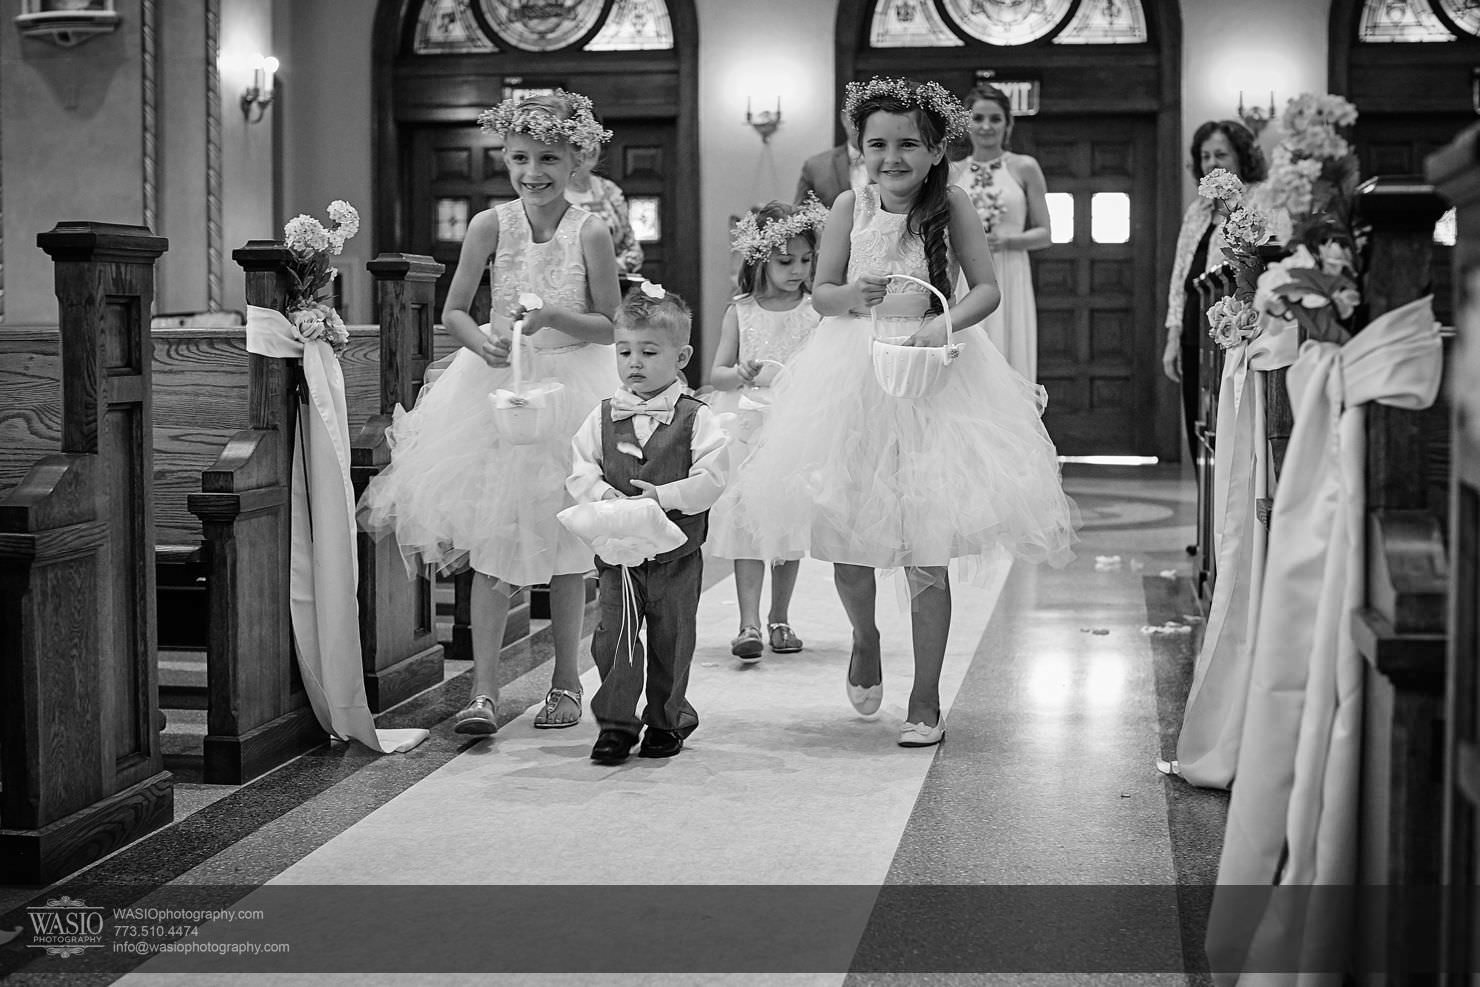 10_Lemont-Wedding_Anita-Pawel_0O3A8253 Lemont Wedding - Anita + Pawel